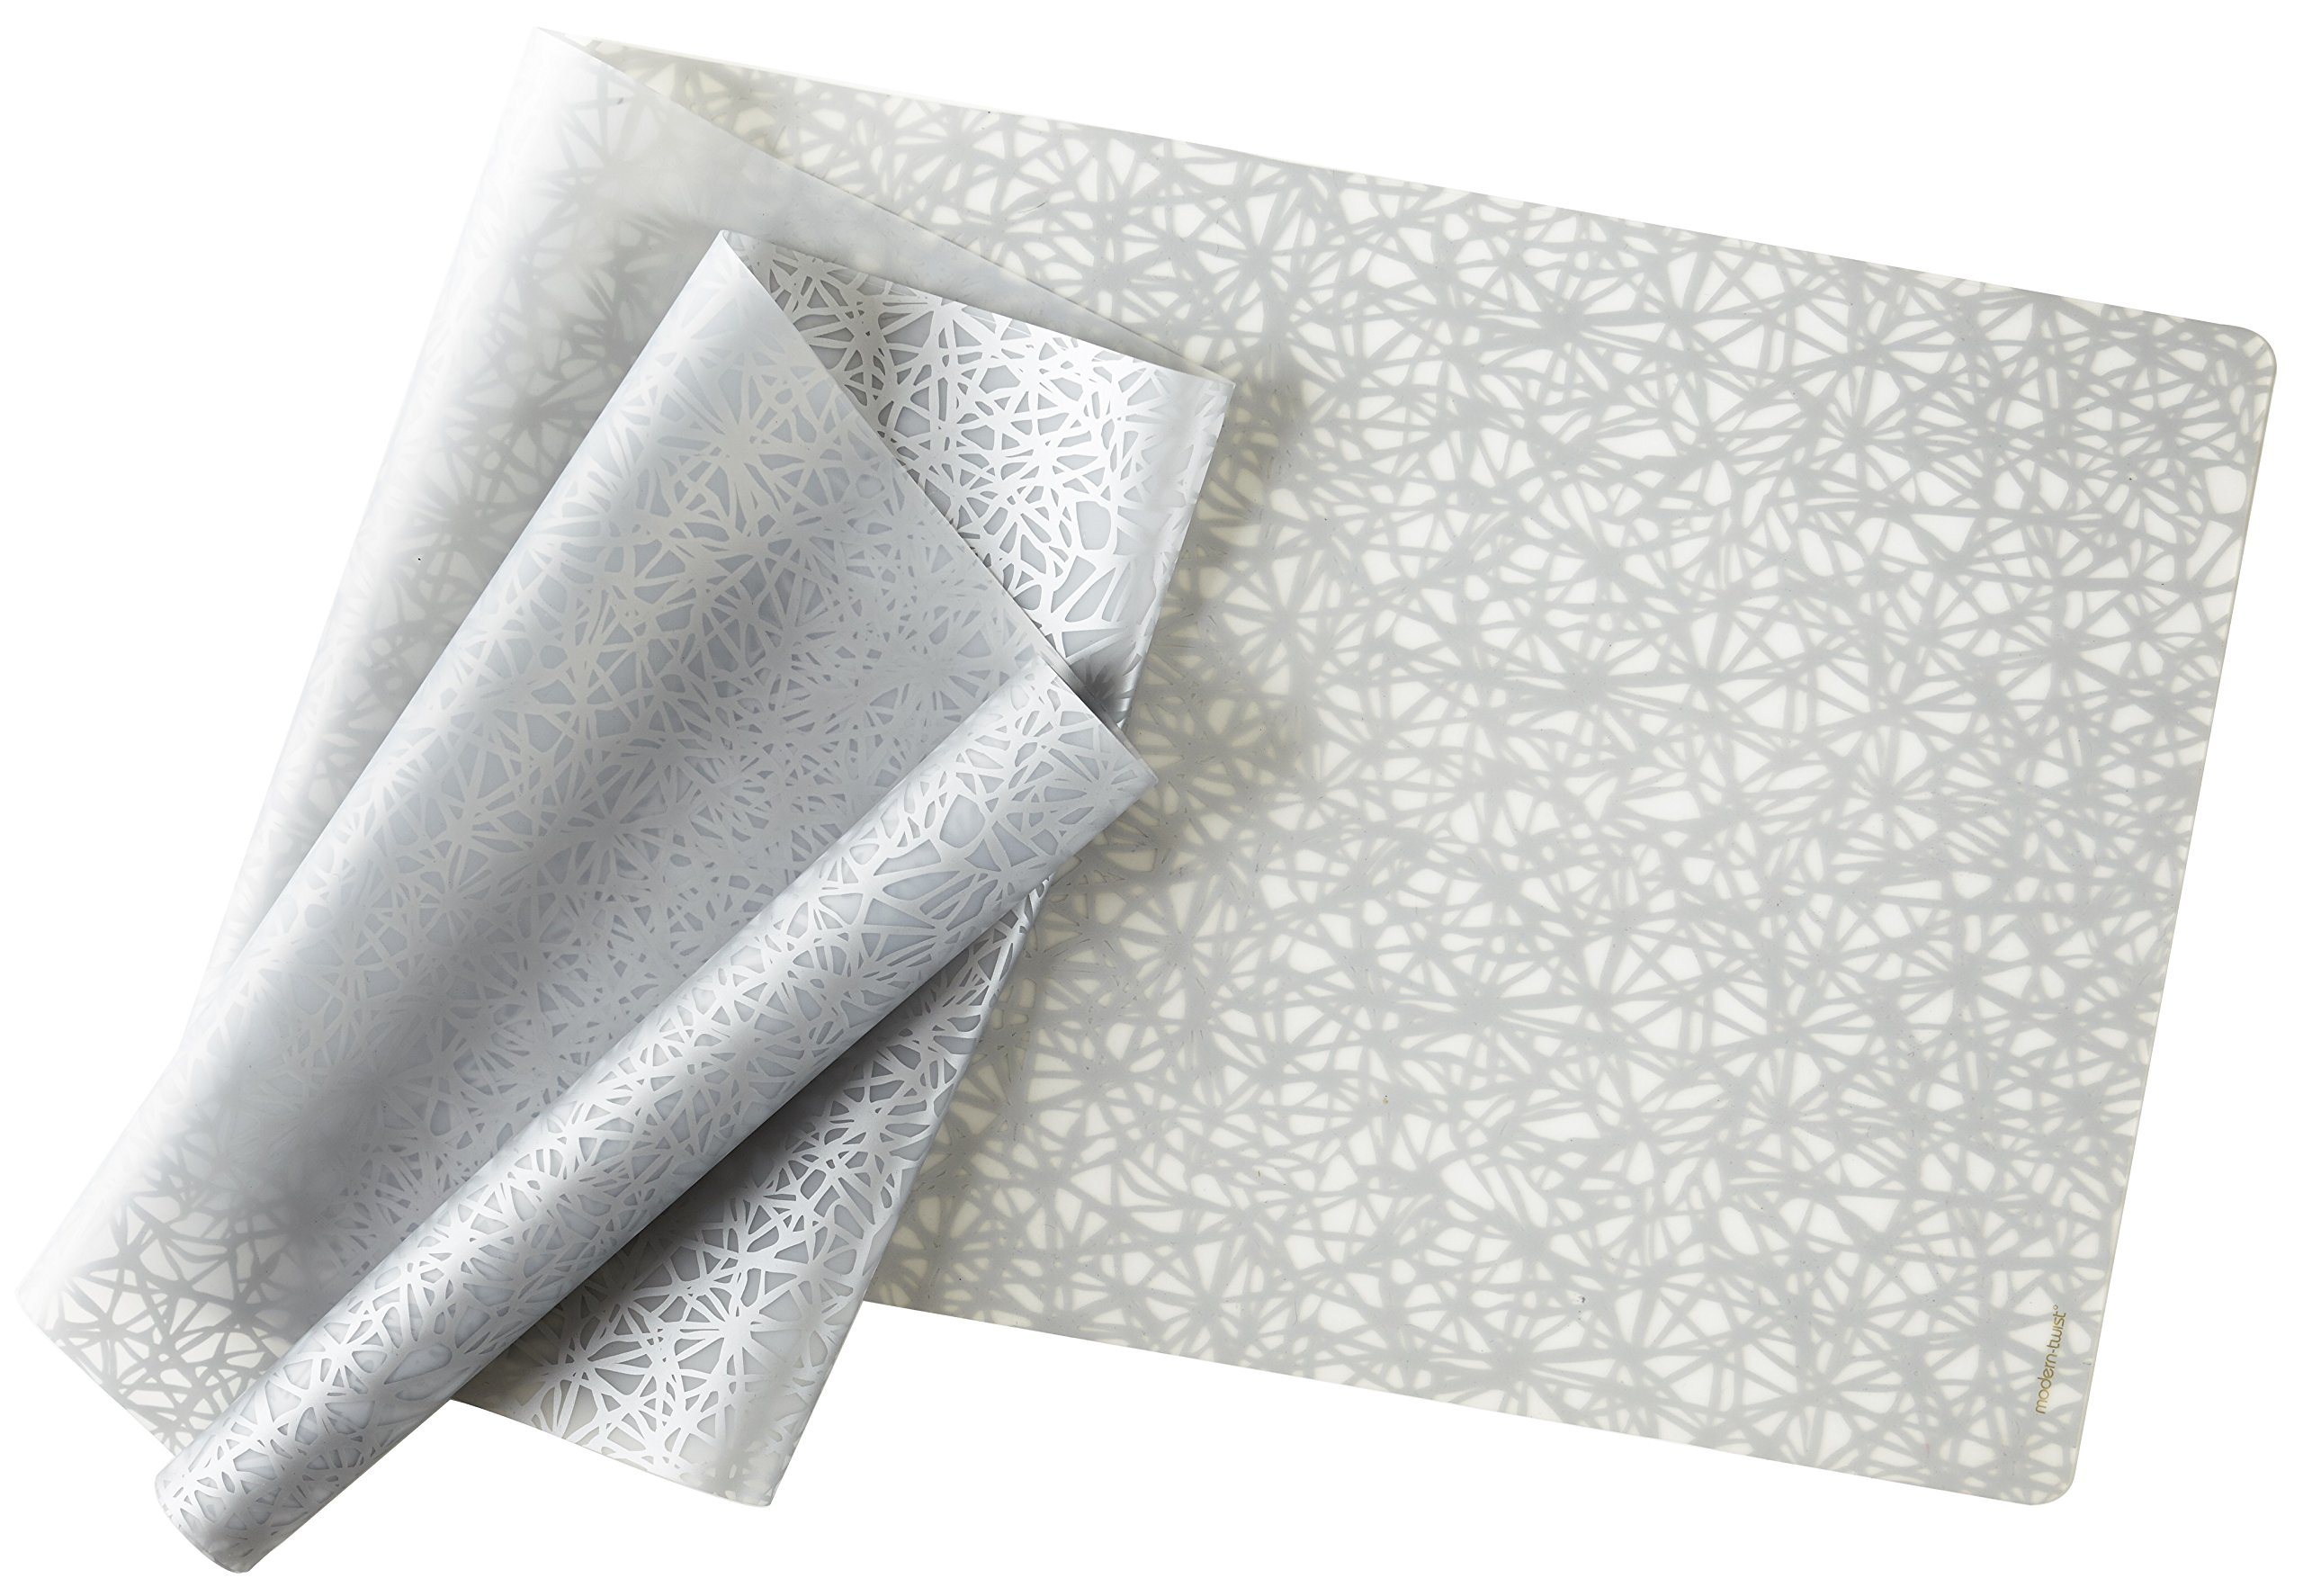 Modern-Twist, Silicone Table Runner, 72'' x 14'', Twine Pattern, Silver